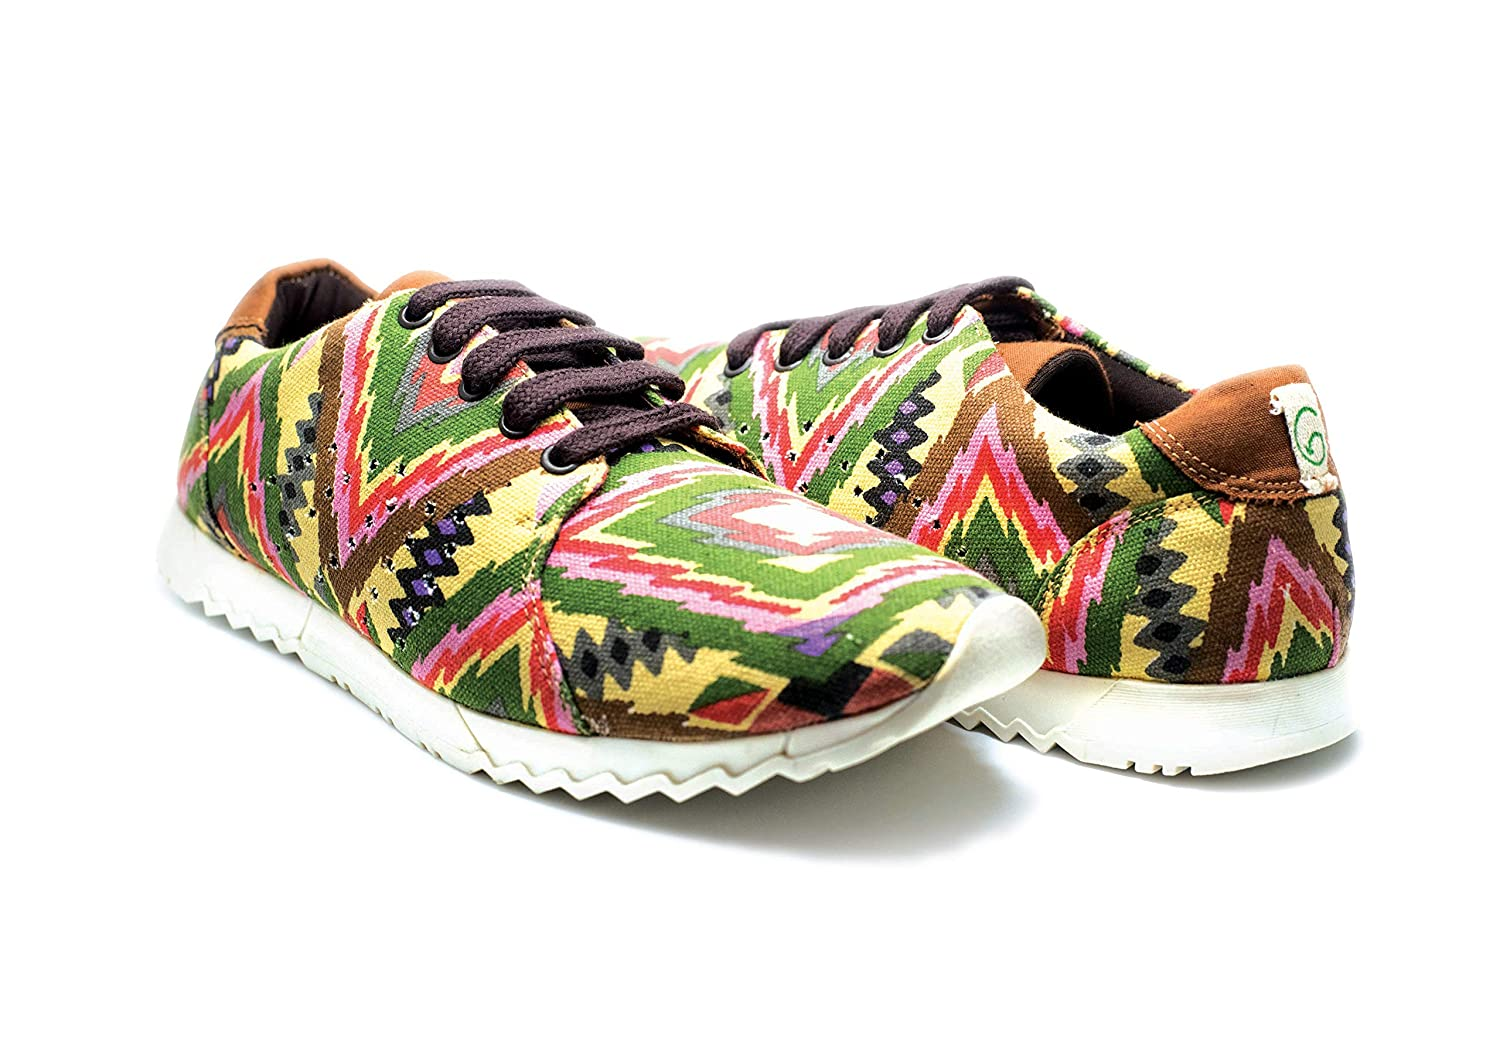 e42333e3edb48 Greensole Sporty Afro Unisex Eco-Friendly Shoes Red and Green: Buy ...